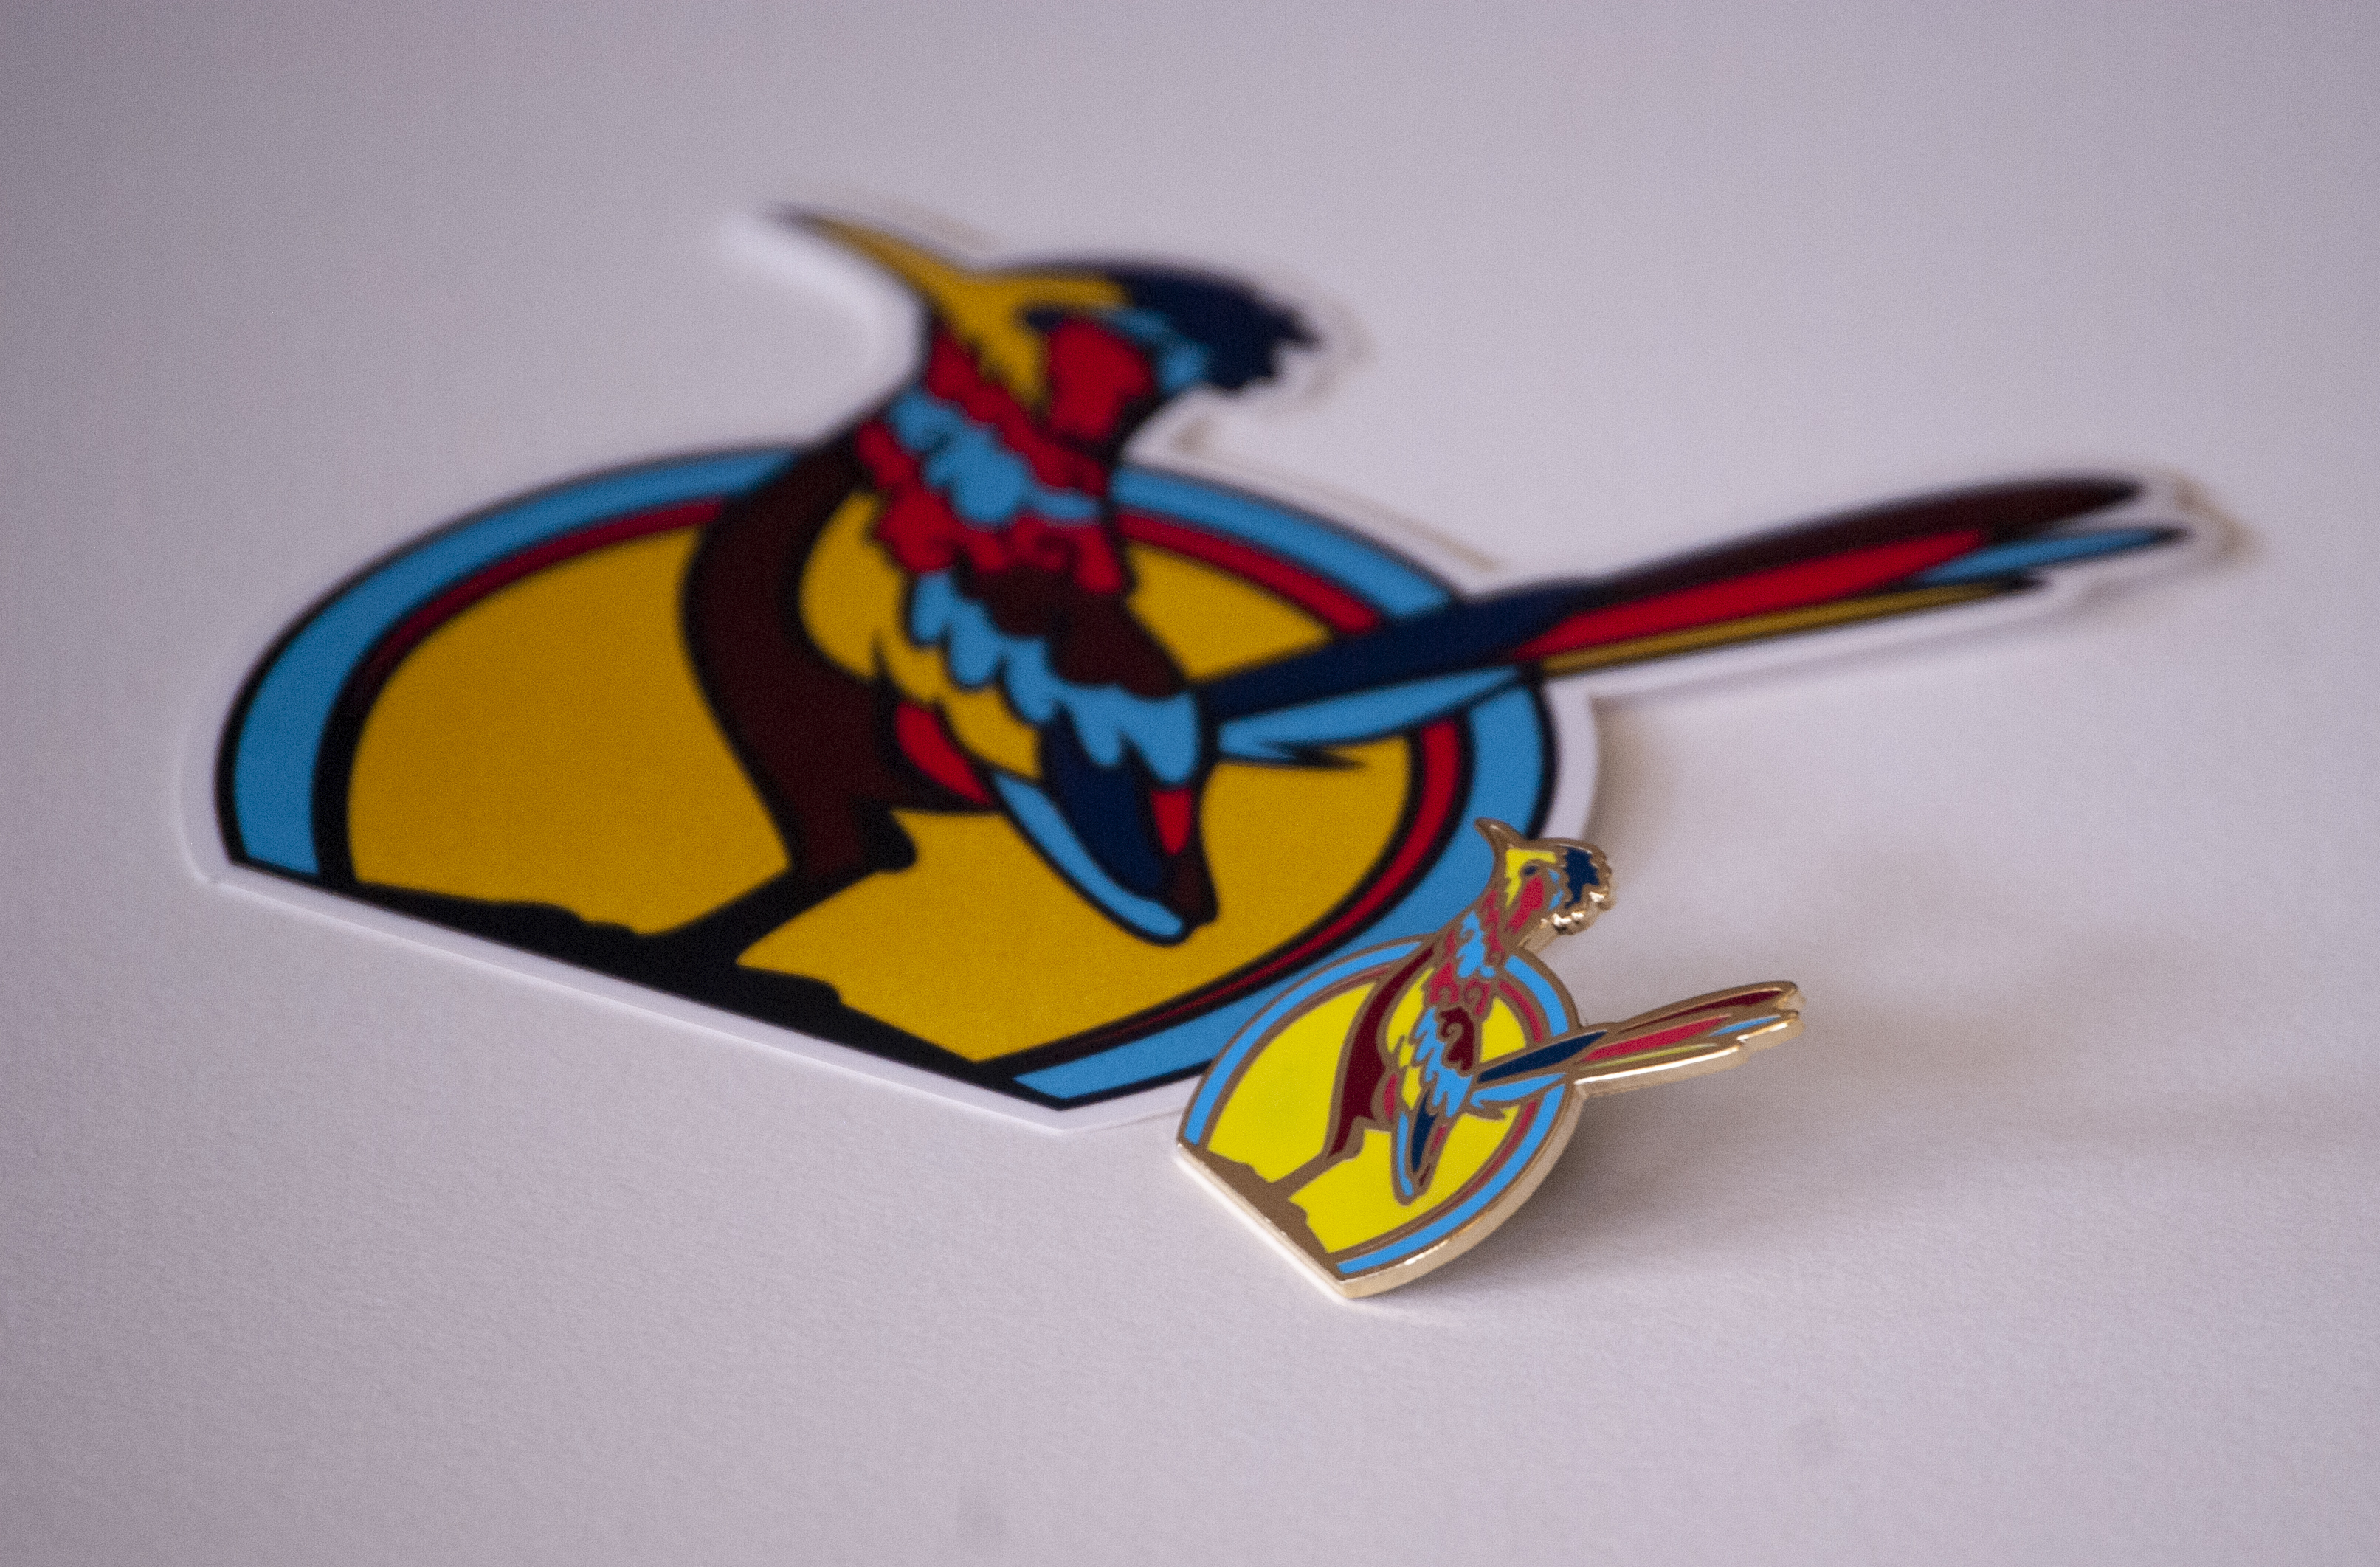 Roadrunner Sticker and Hard Enamel Pin